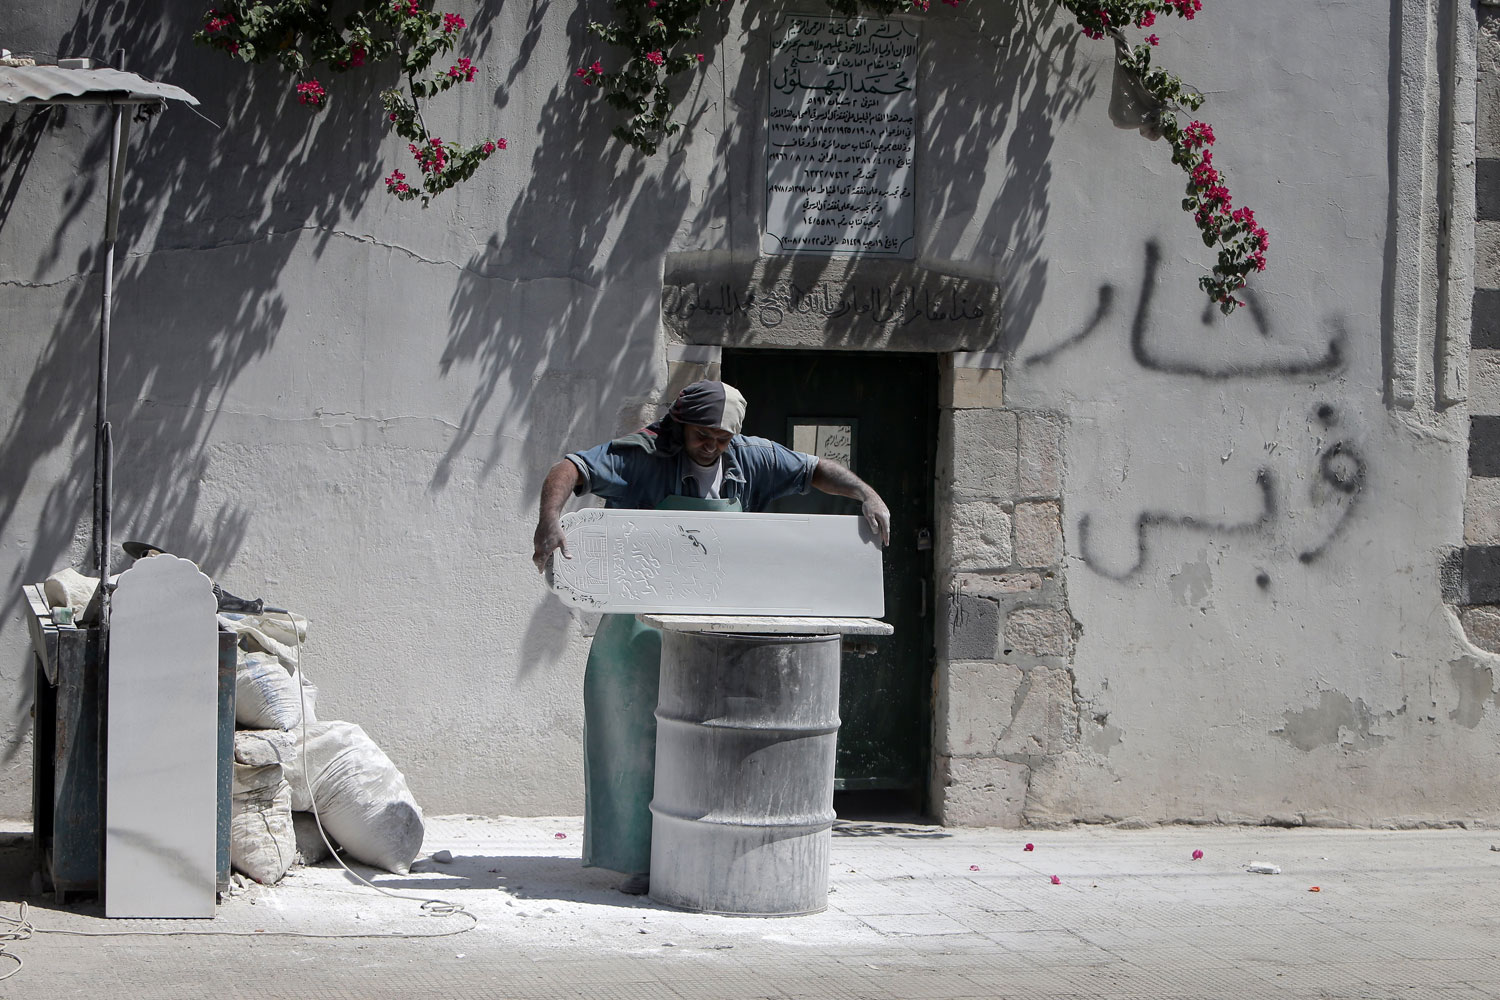 Aug. 28, 2012. A Syrian tombstone sculptor works at his workshop in Damascus.